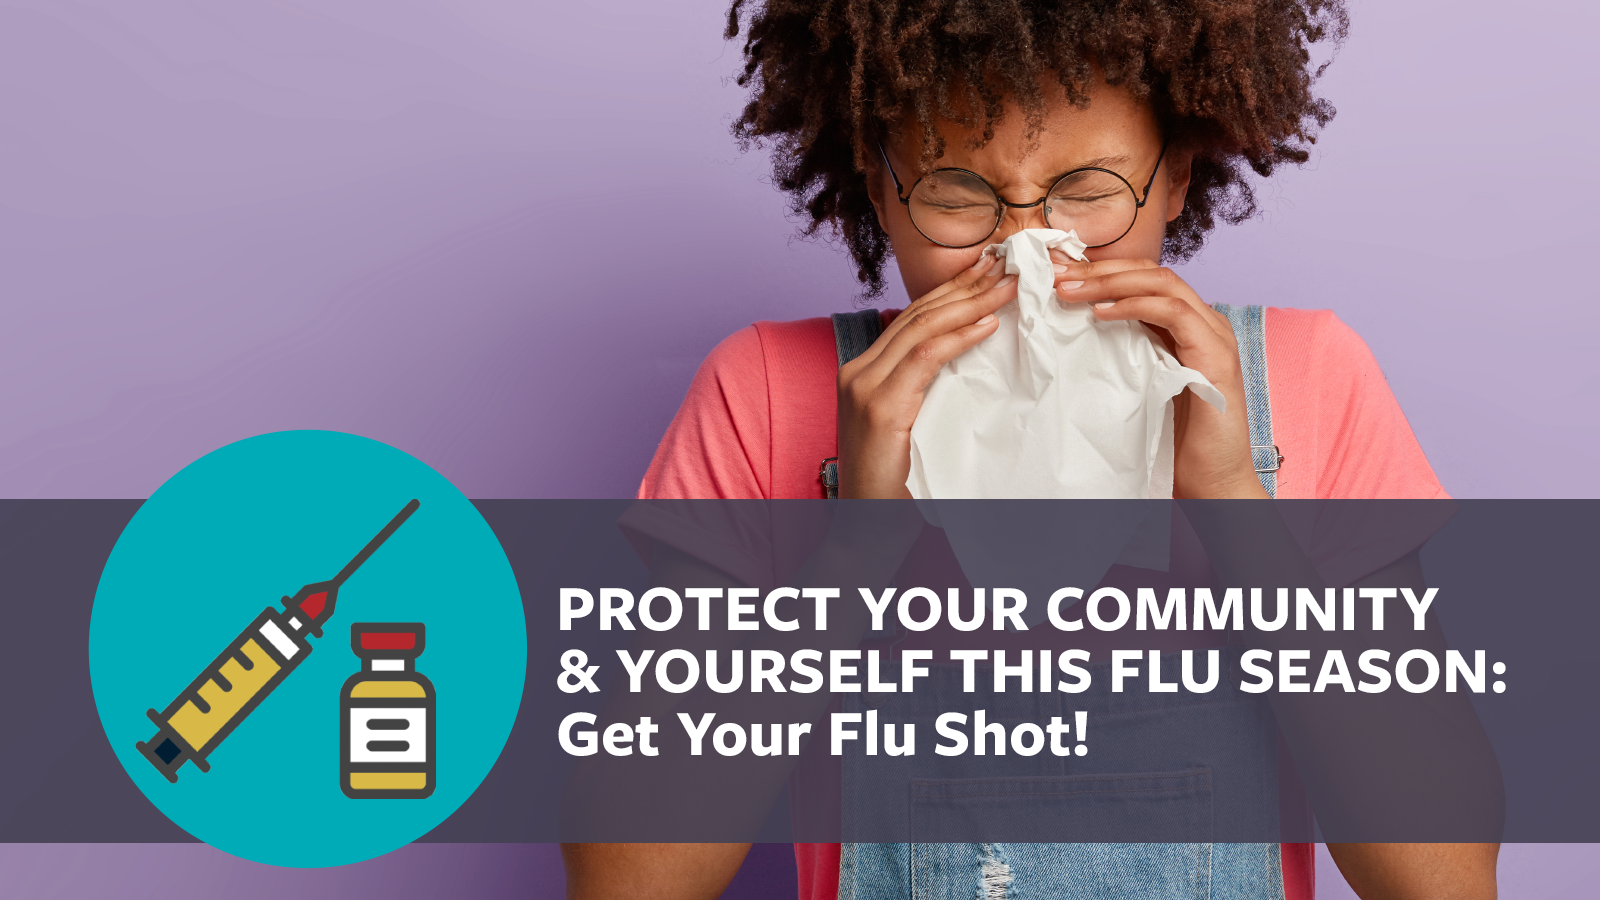 Protect your community and yourself this flu season. Get your flu shot!